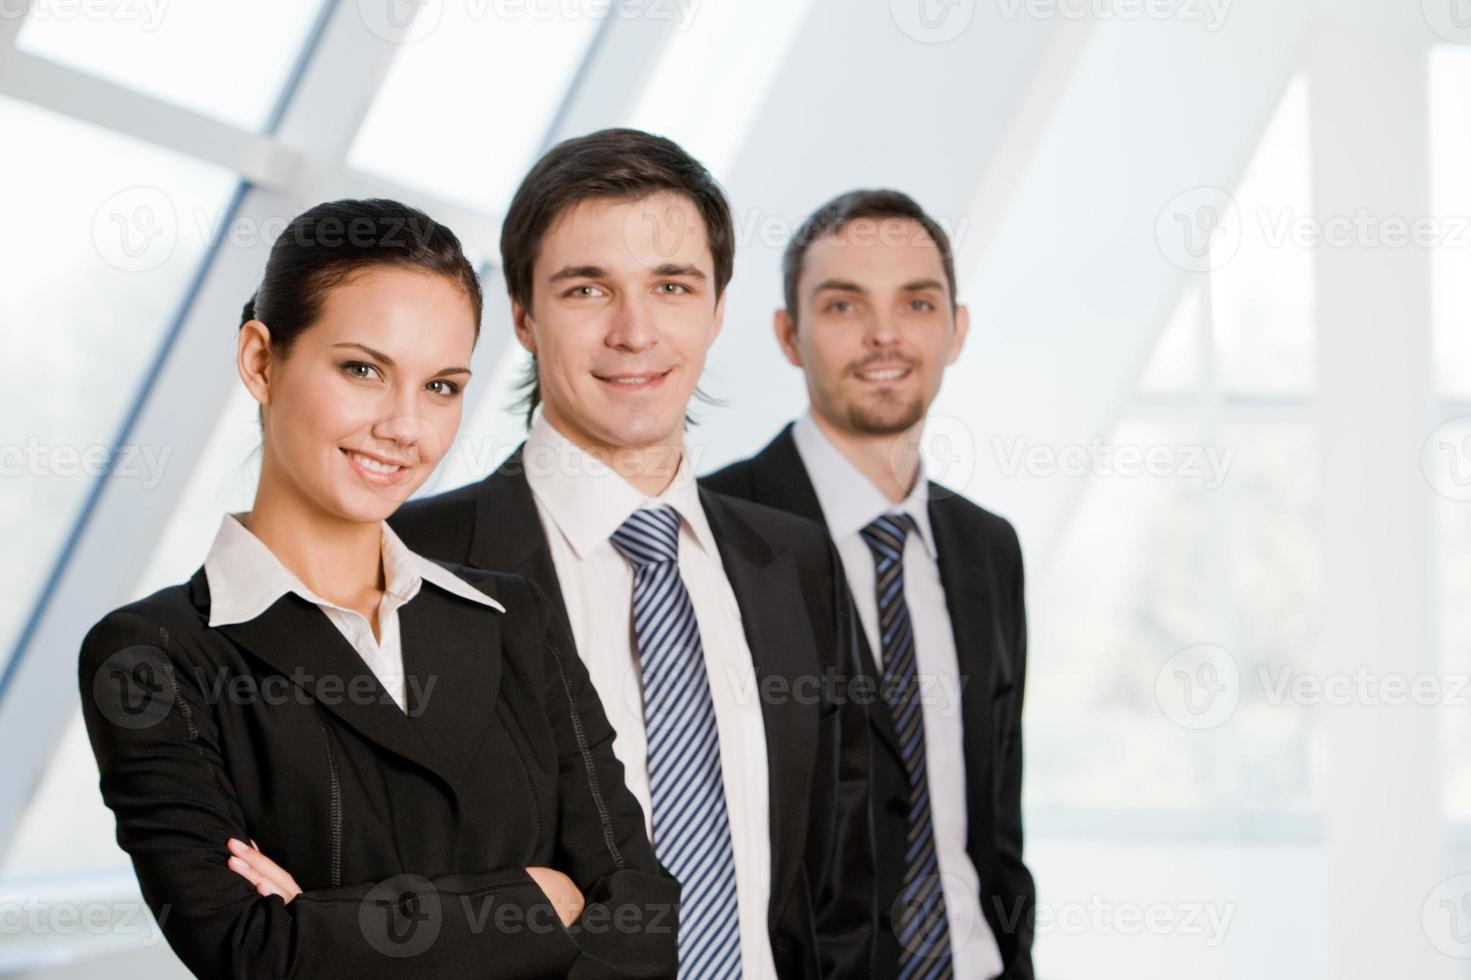 An image of three smiling business people photo